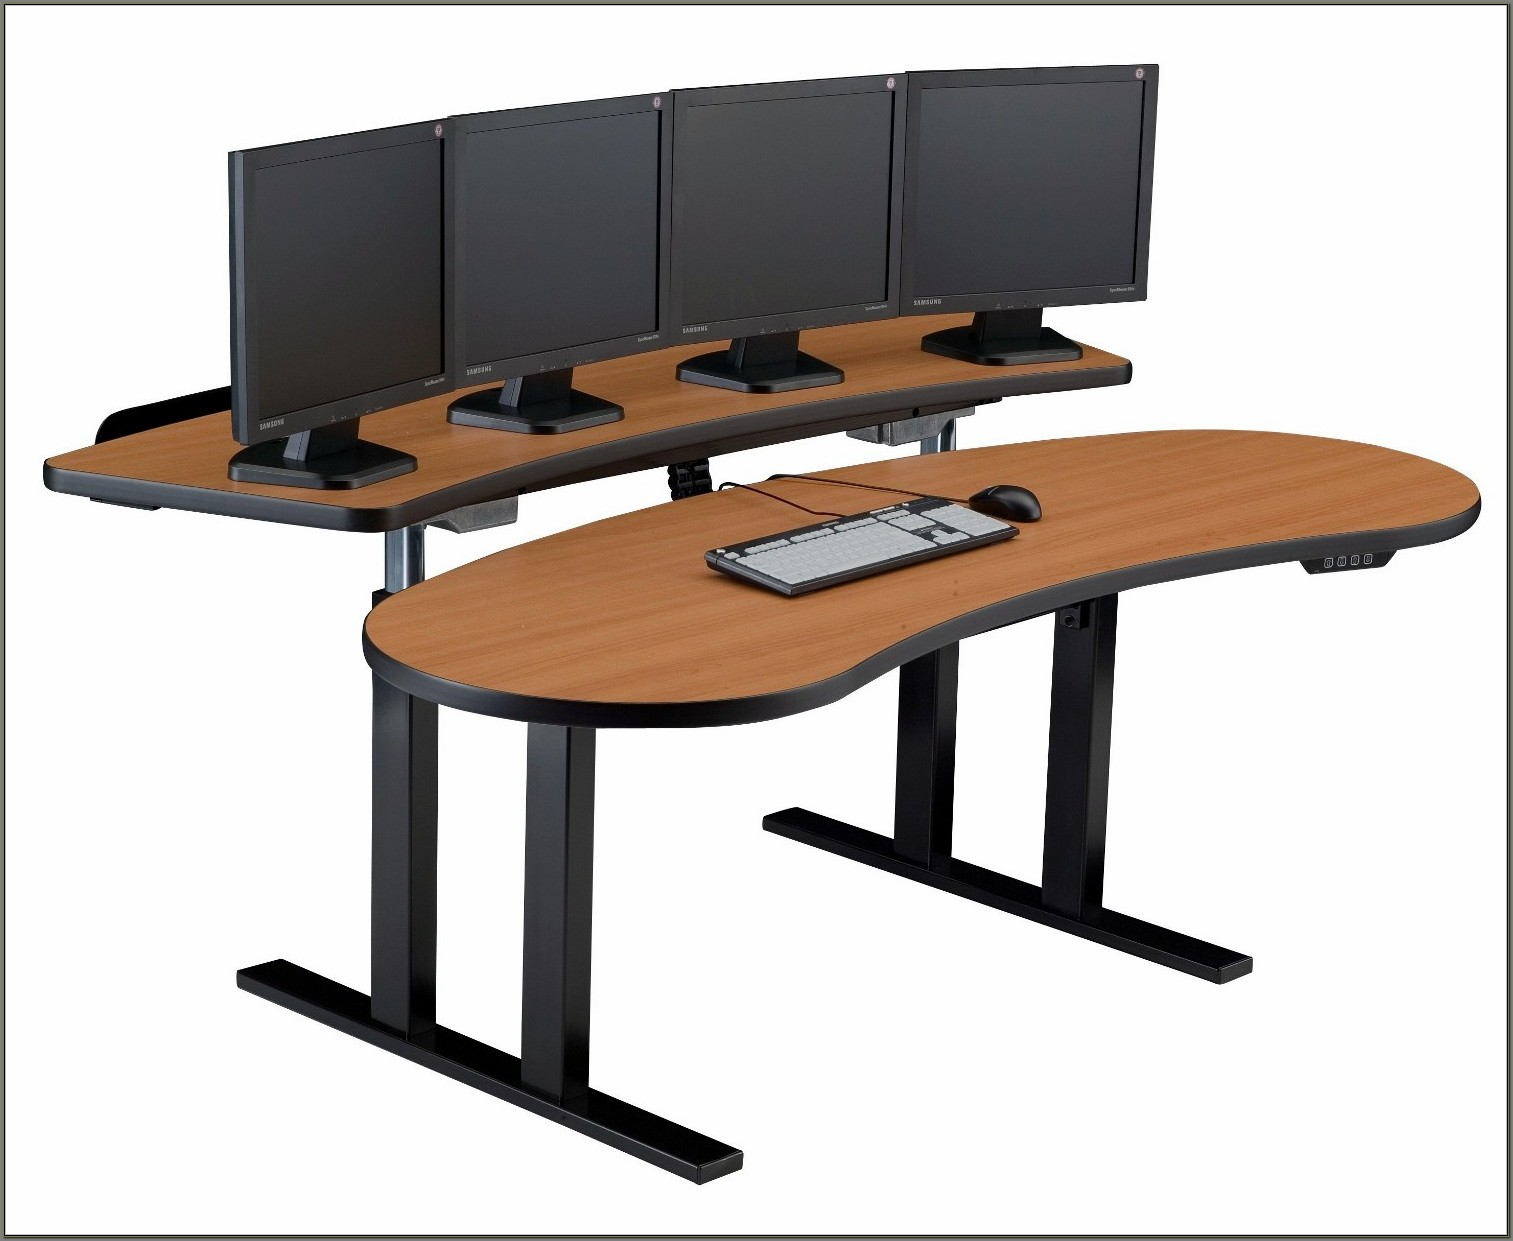 Ergonomic Adjustable Computer Desk